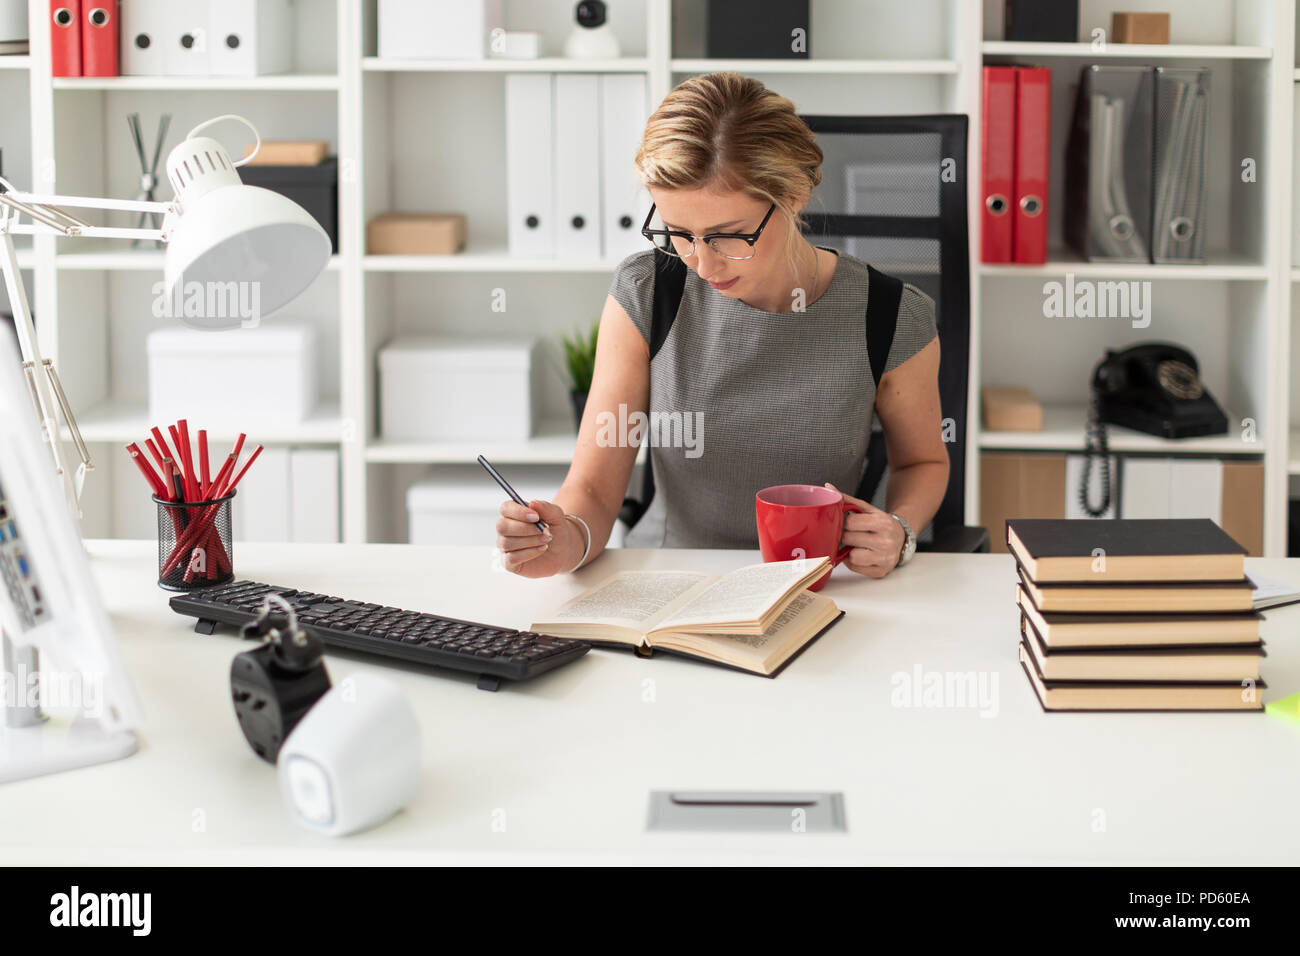 A young girl is sitting at a table in the office, holding a pencil and a red cup in her hand. Before the girl lies an open book. Stock Photo